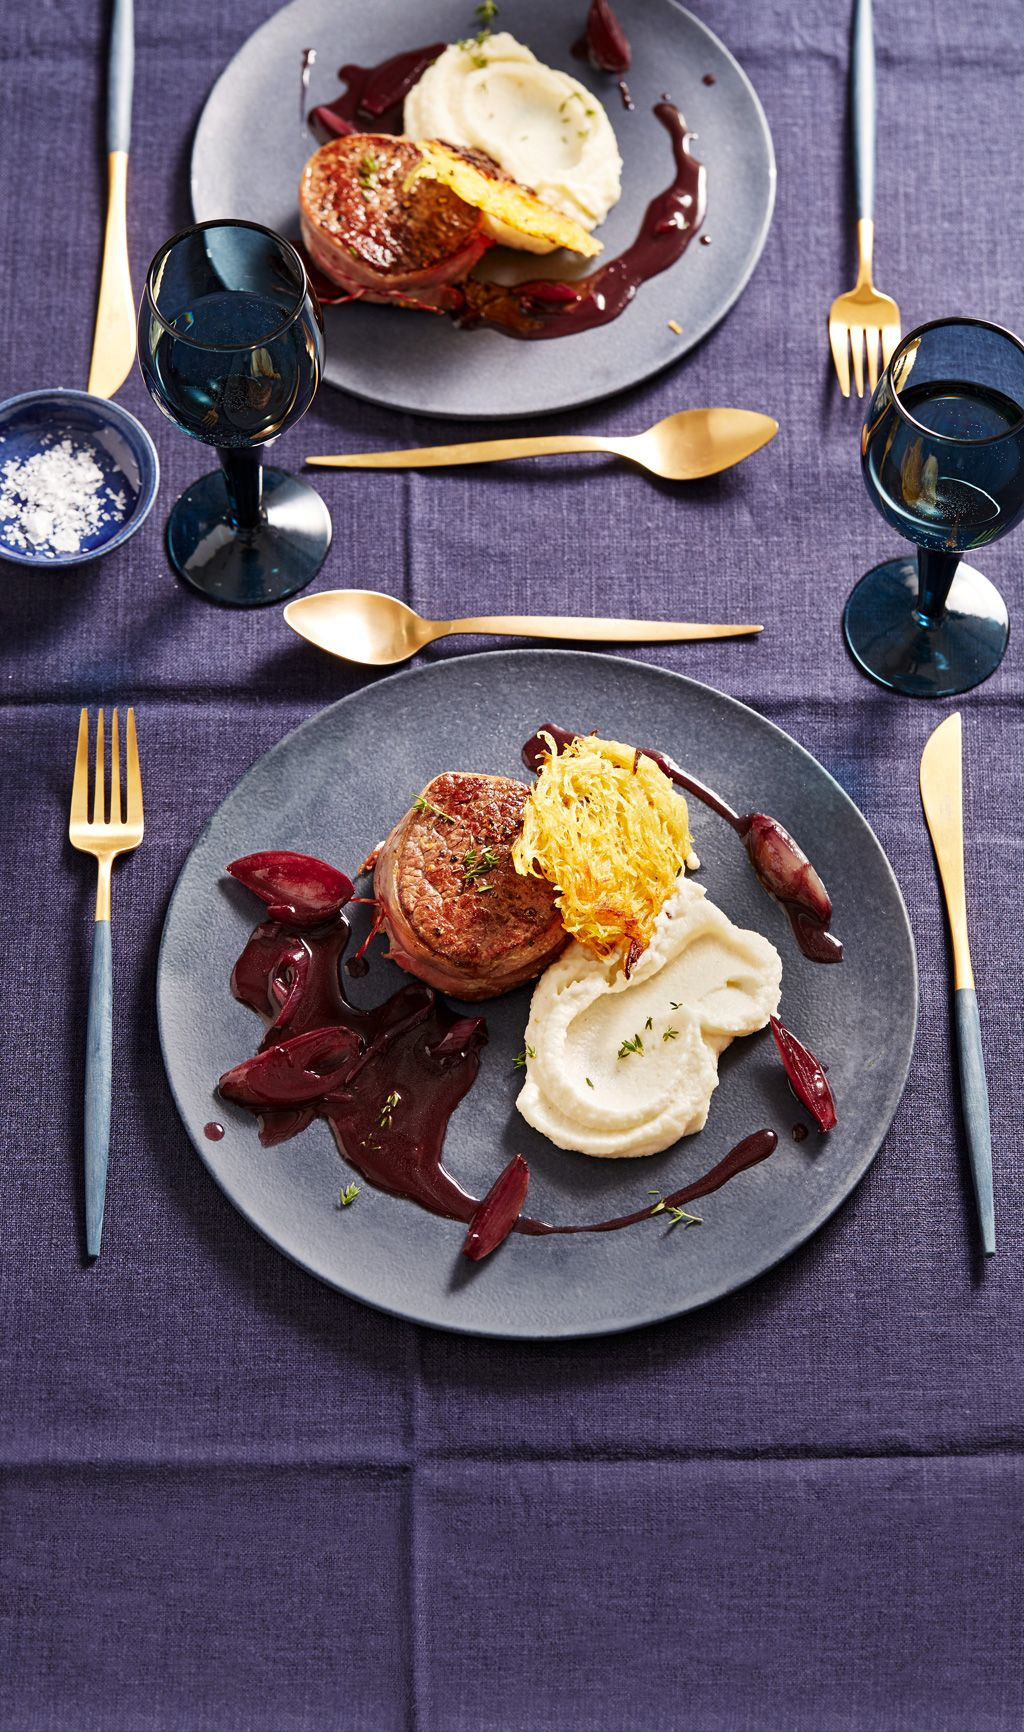 Photo of Beef fillet in red wine sauce with pureed celery and hash browns from chefkoch   chef